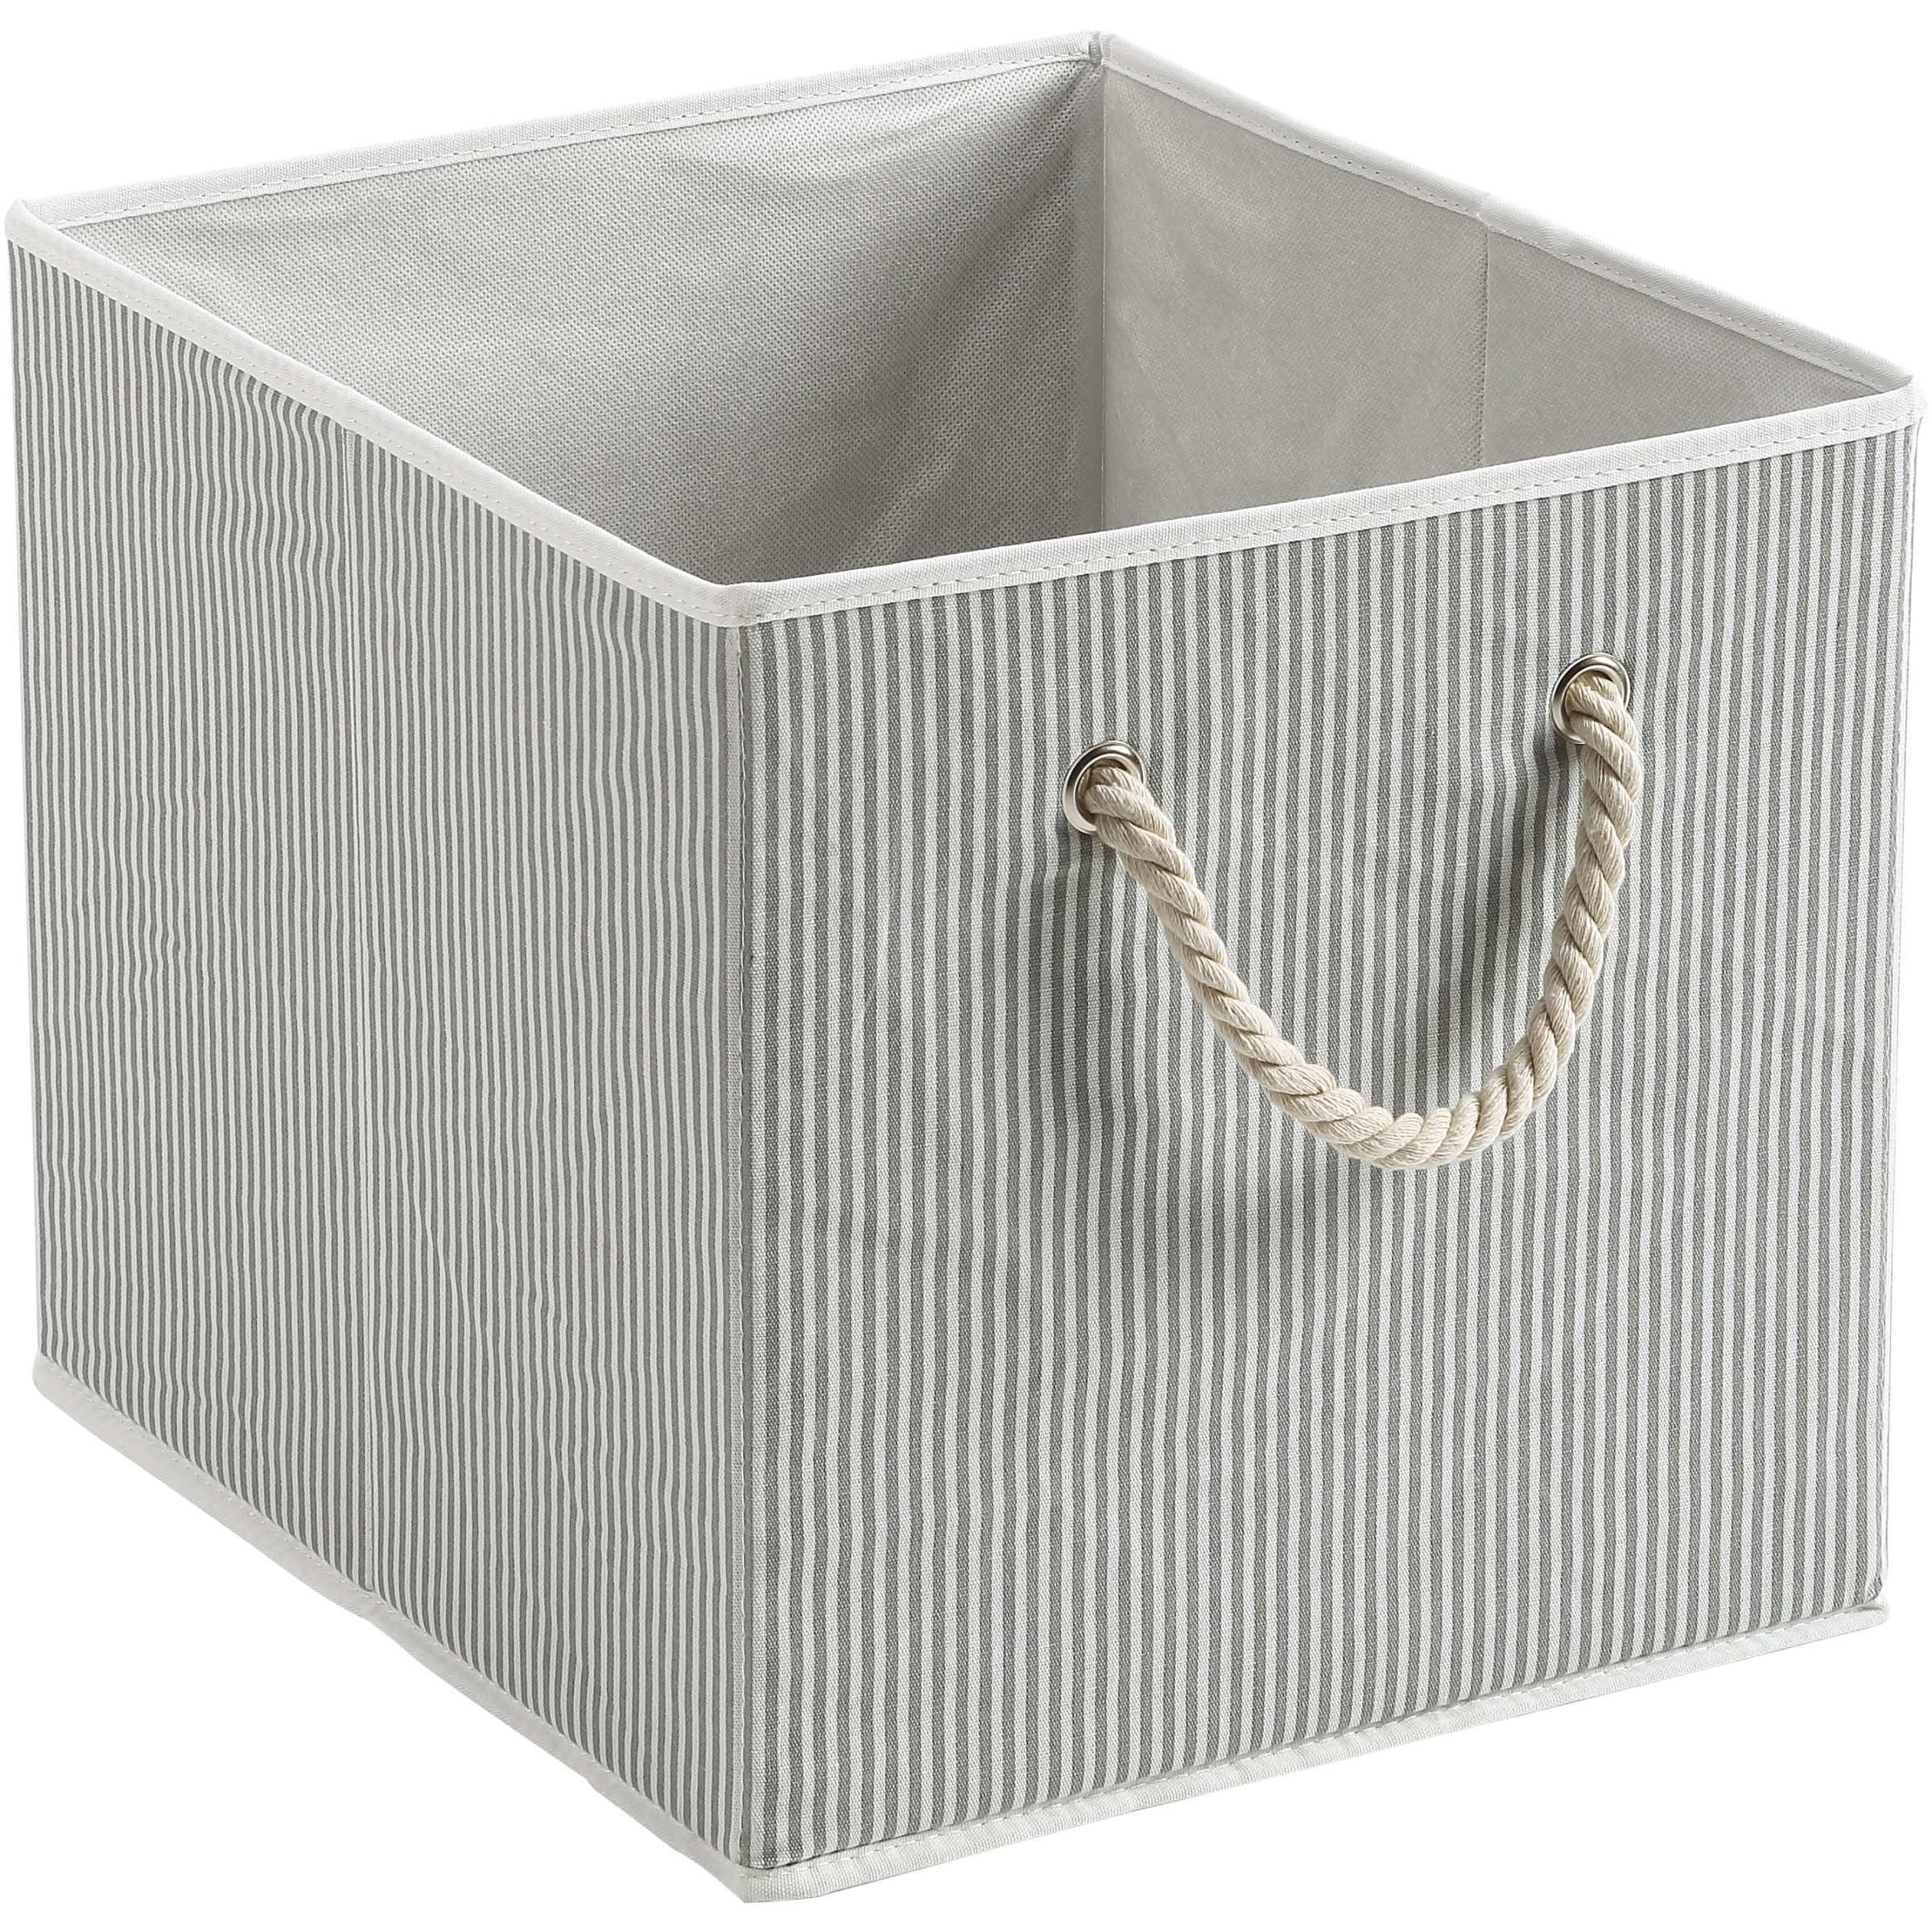 Better Homes And Gardens Fabric Cube Storage Bin With Rope Handle 12 75 X 12 75 Single Unit Walmart Com In 2020 Fabric Storage Bins Cube Storage Bins Cube Storage